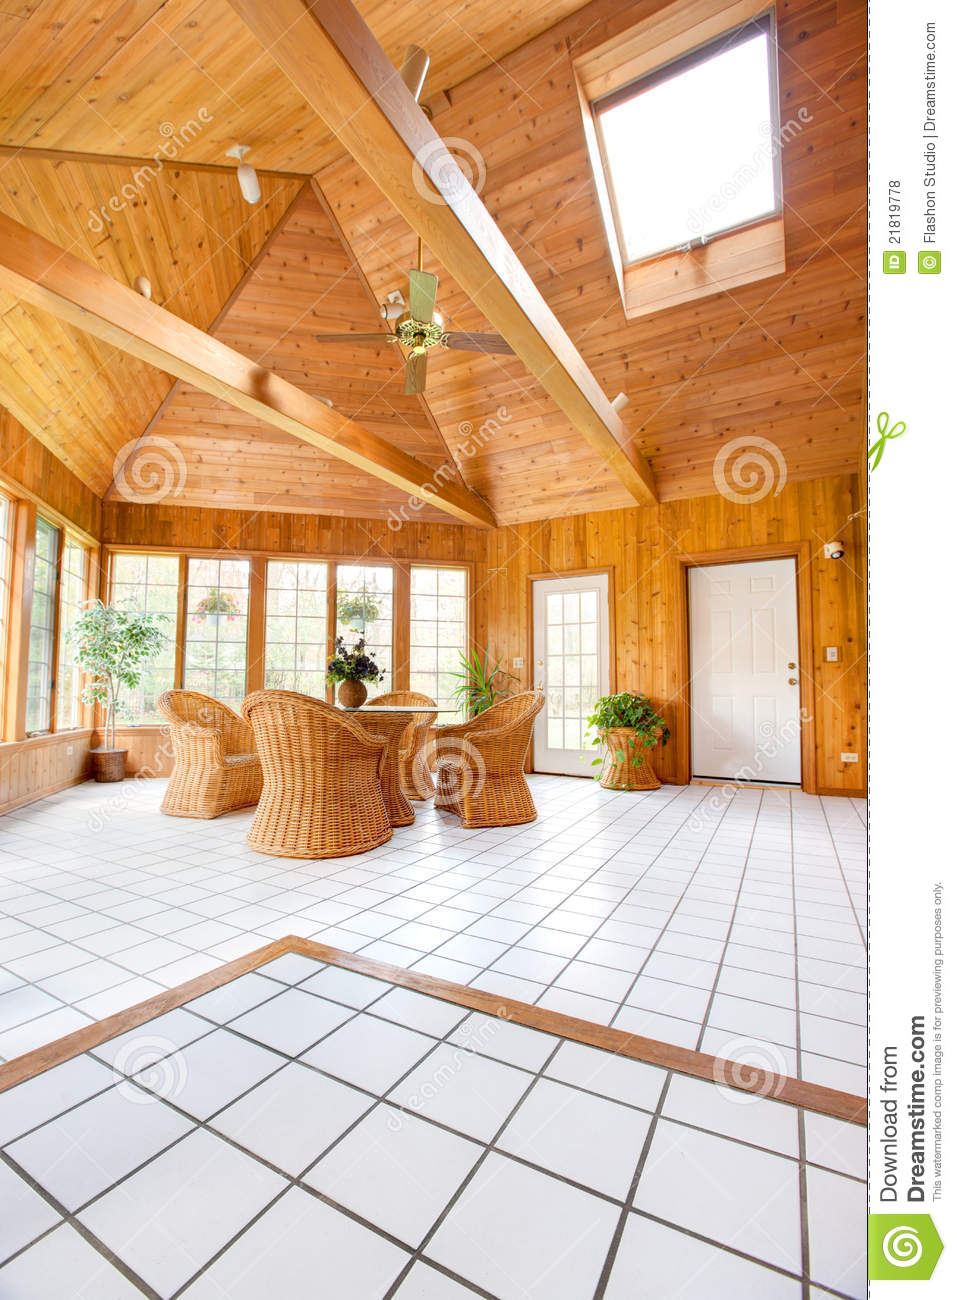 Wooden wall sun room interior royalty free stock photos for Sunroom interior walls